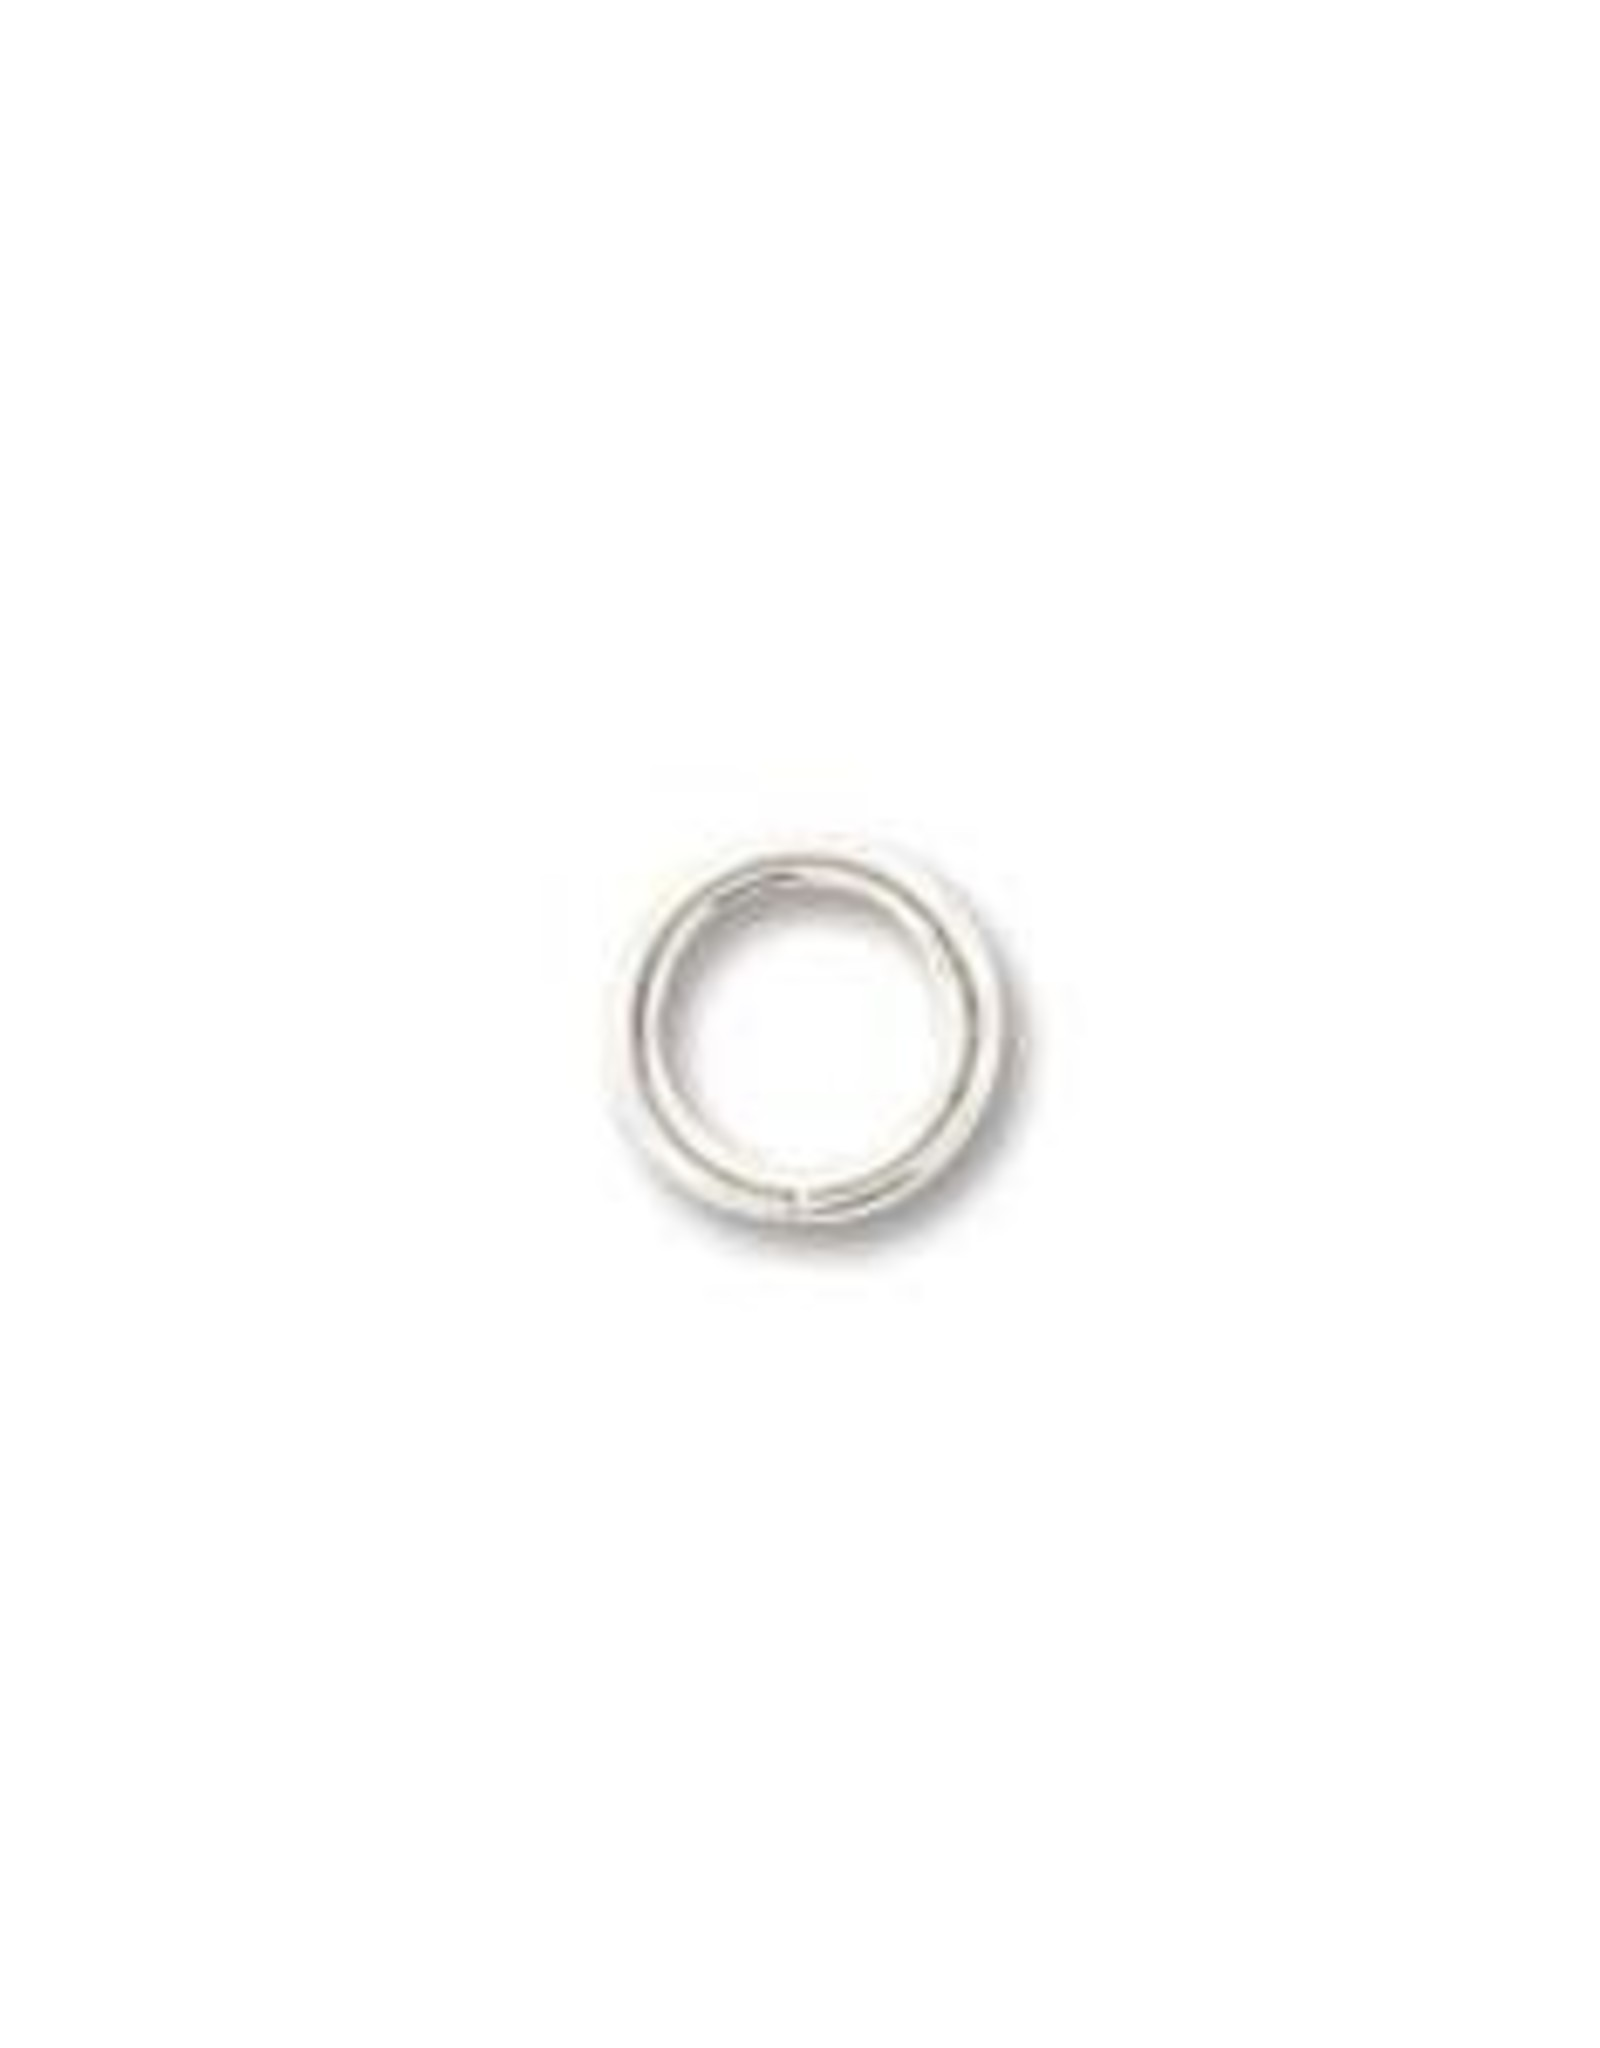 5mm Jumpring 19ga Silver Plated Qty 24